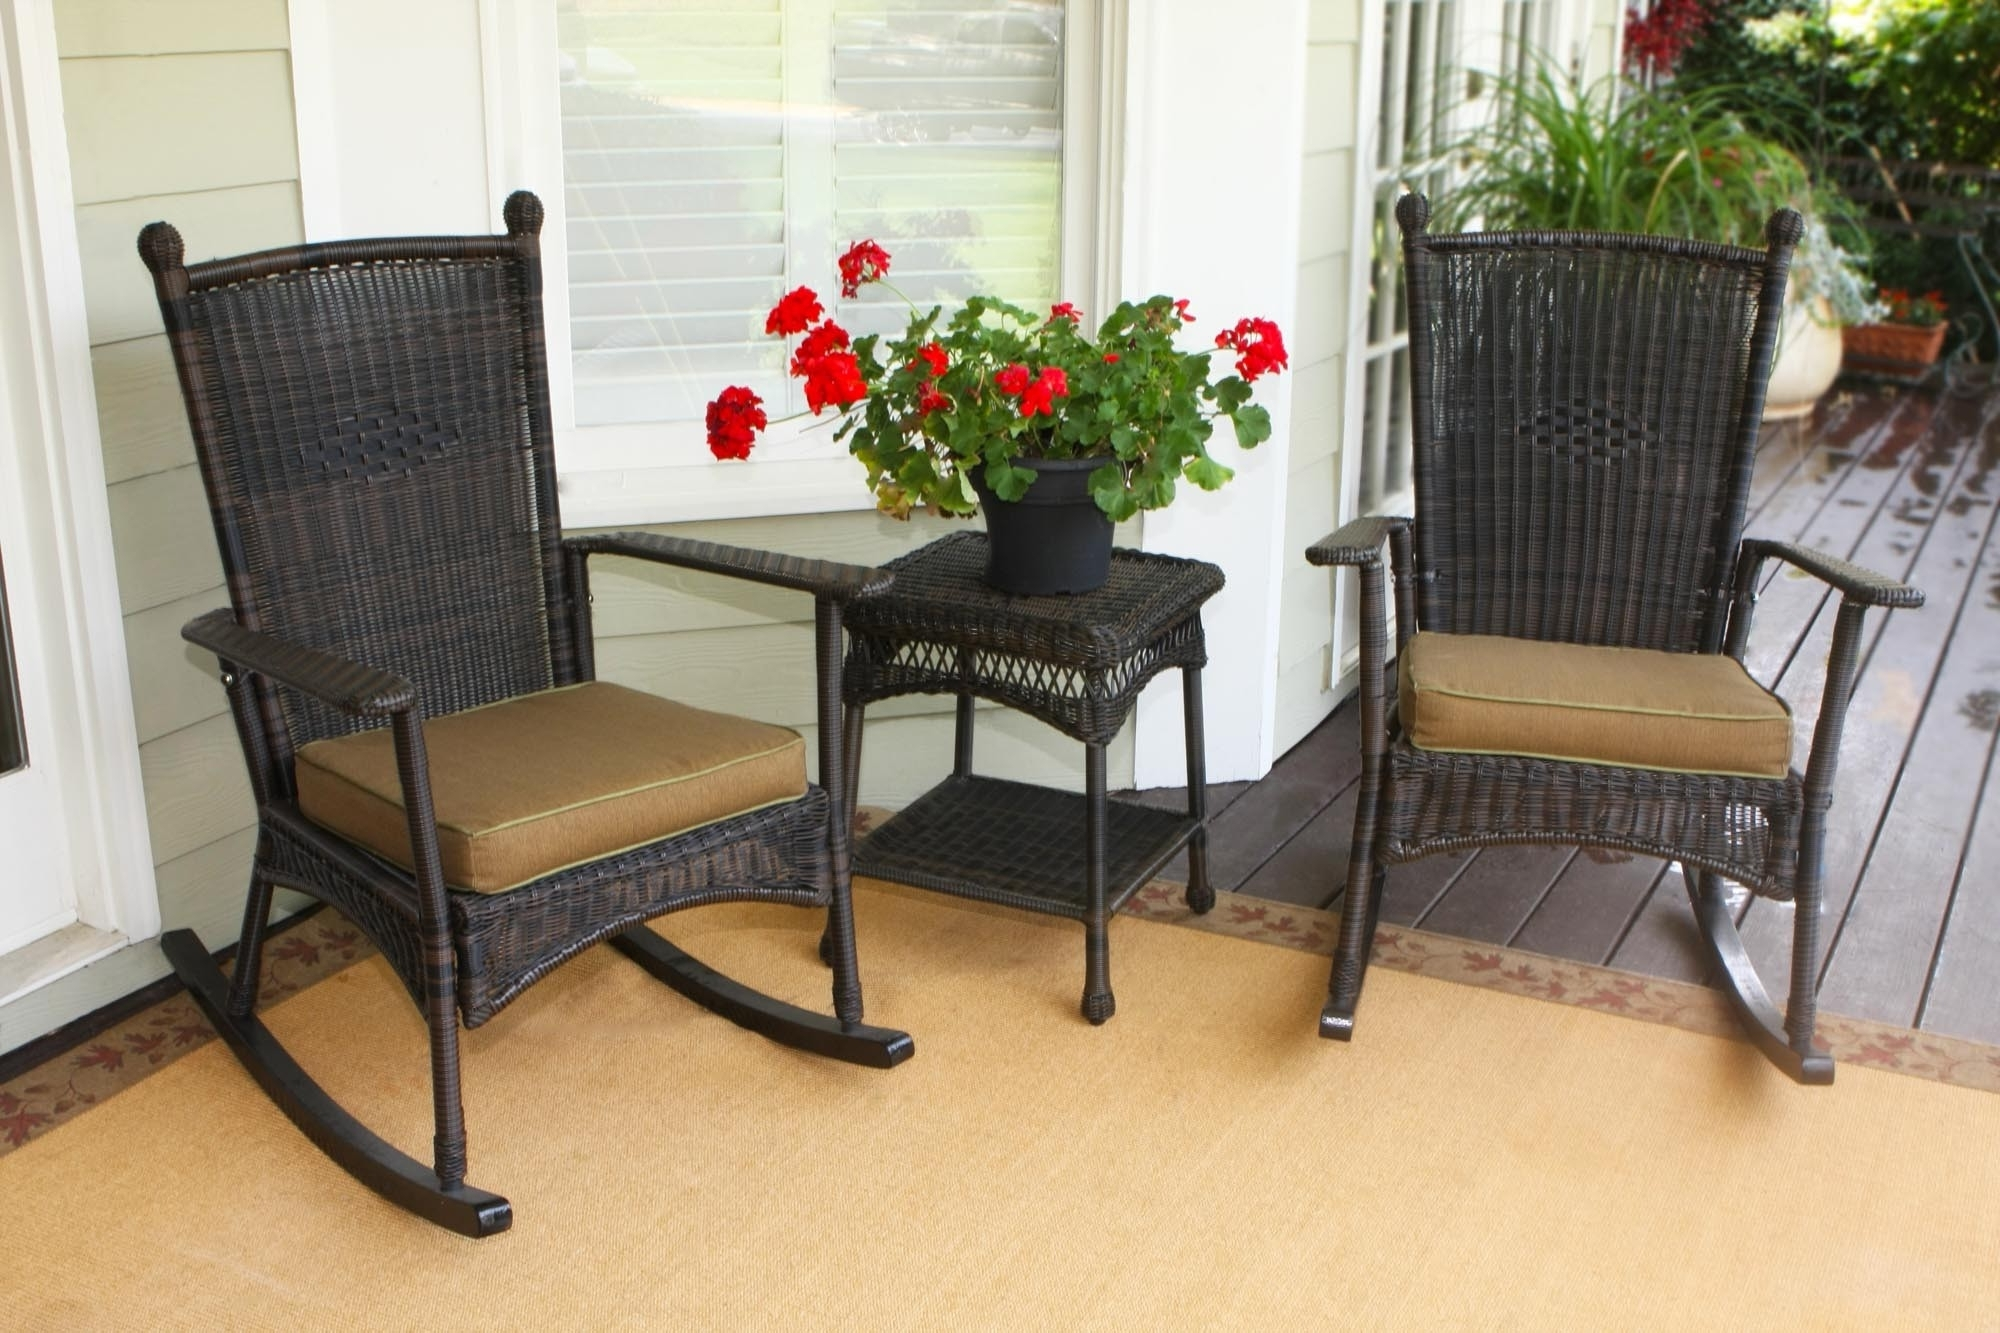 Fashionable Outdoor Wicker Rocking Chairs With Cushions Regarding Rocking Chairs – Tortuga Outdoor Of Georgia – Alpharetta (View 2 of 20)